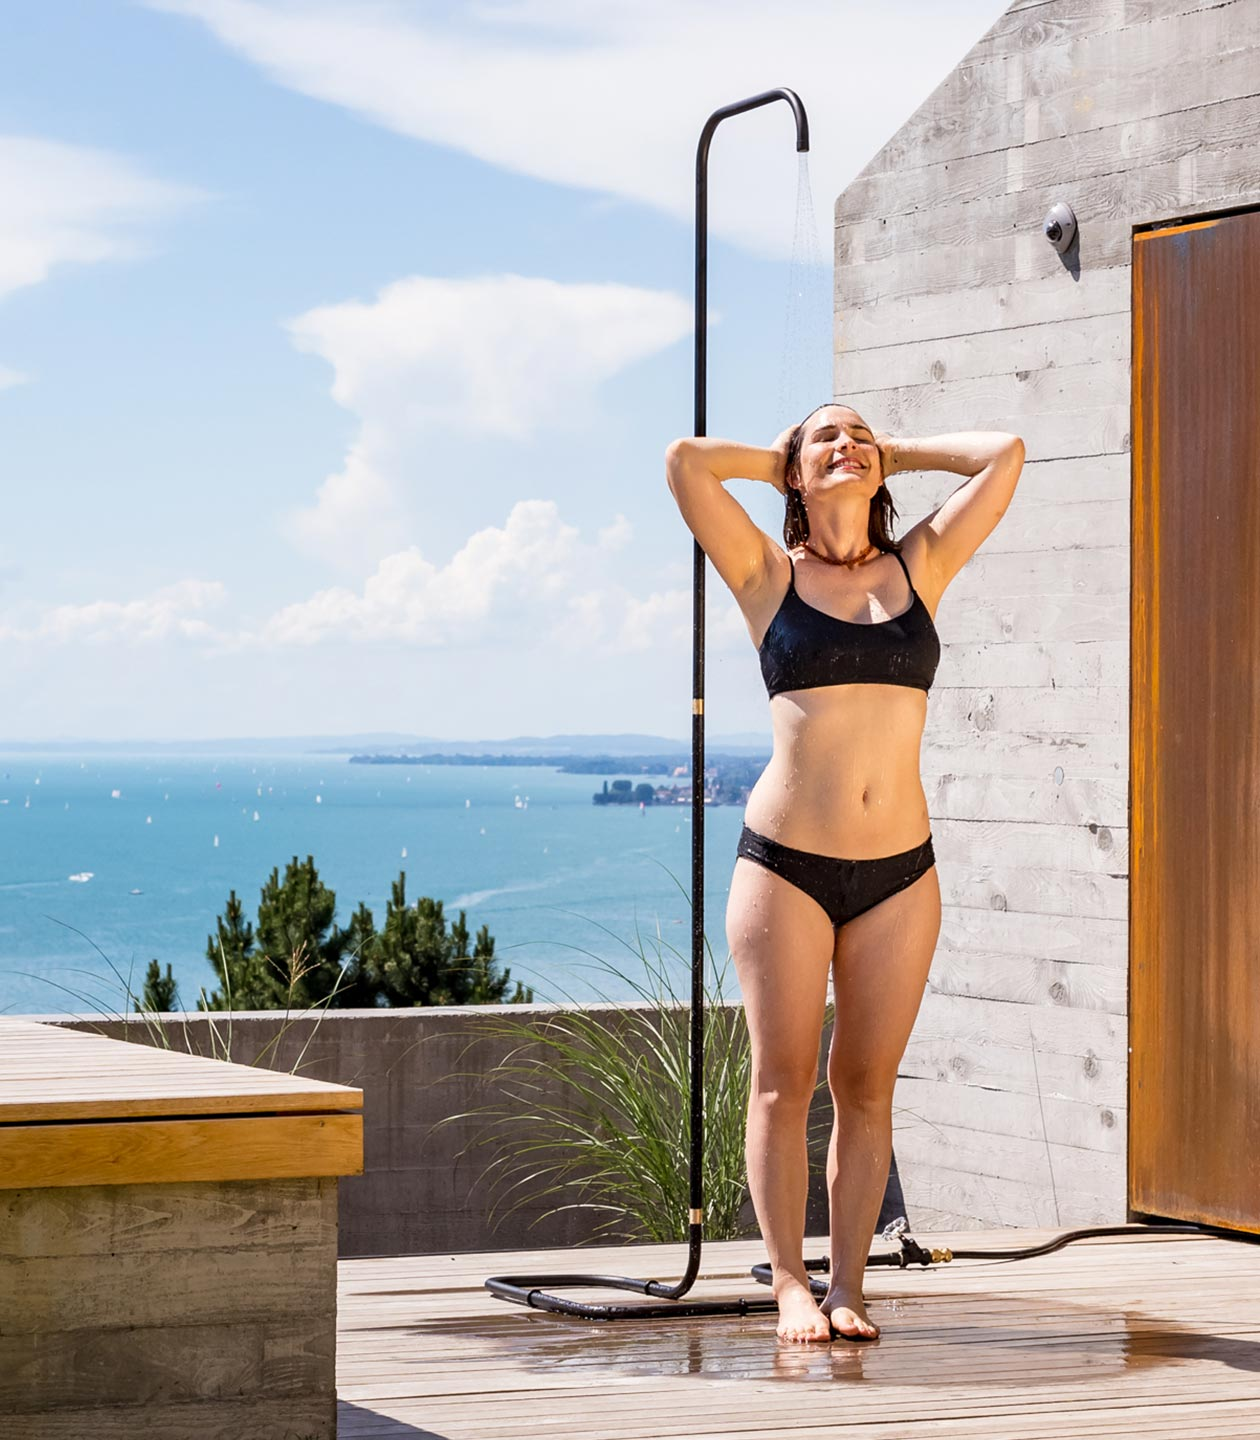 The most minimalist outdoor shower.